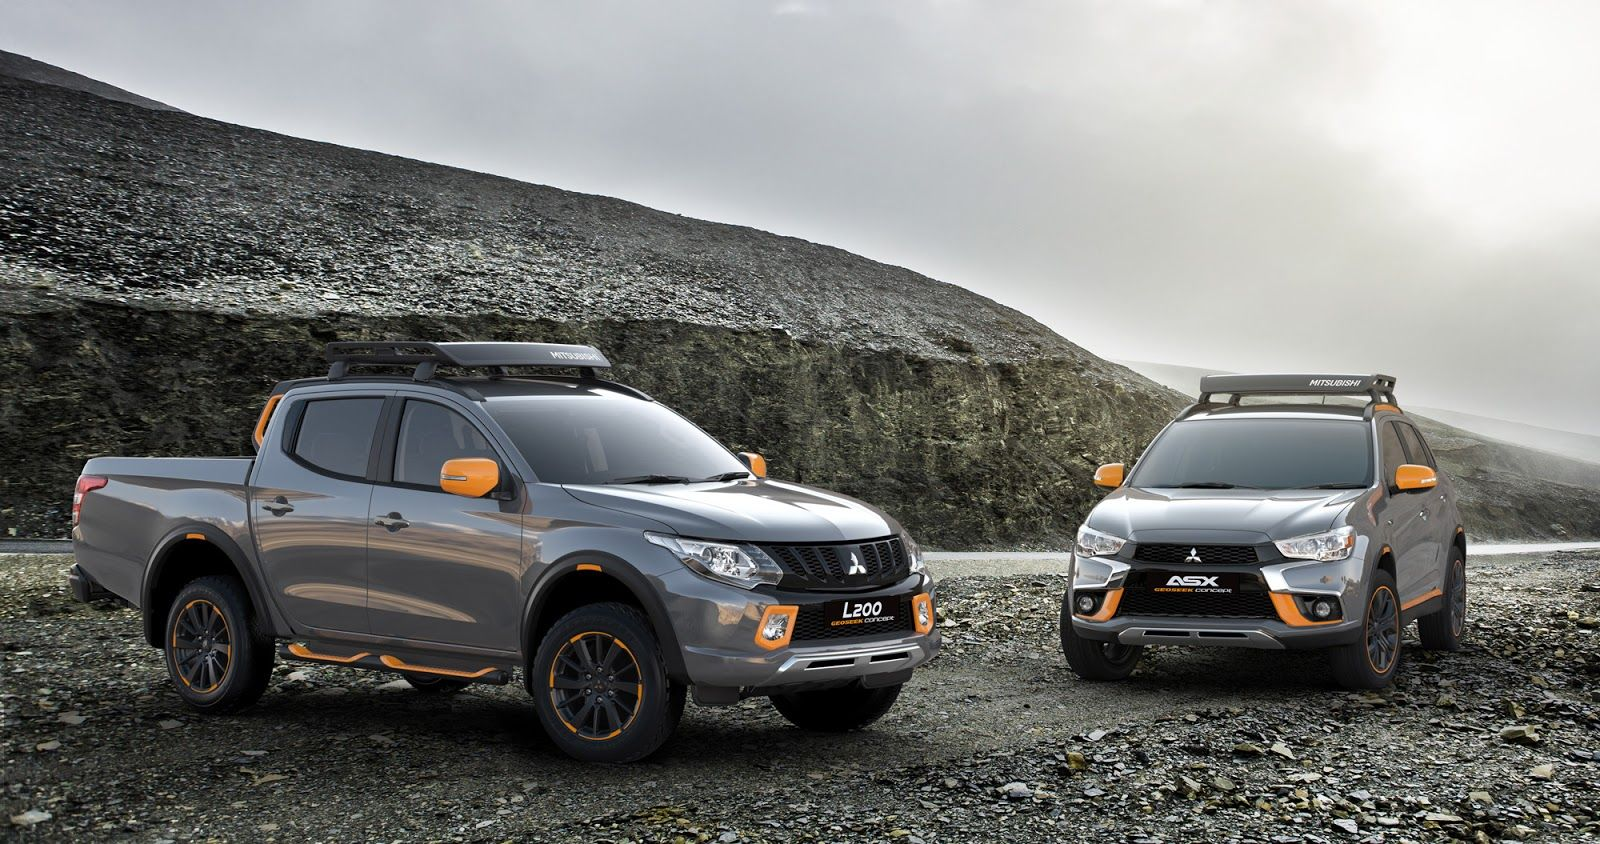 Mitsubishi flavors up l200 and asx with geoseek concepts